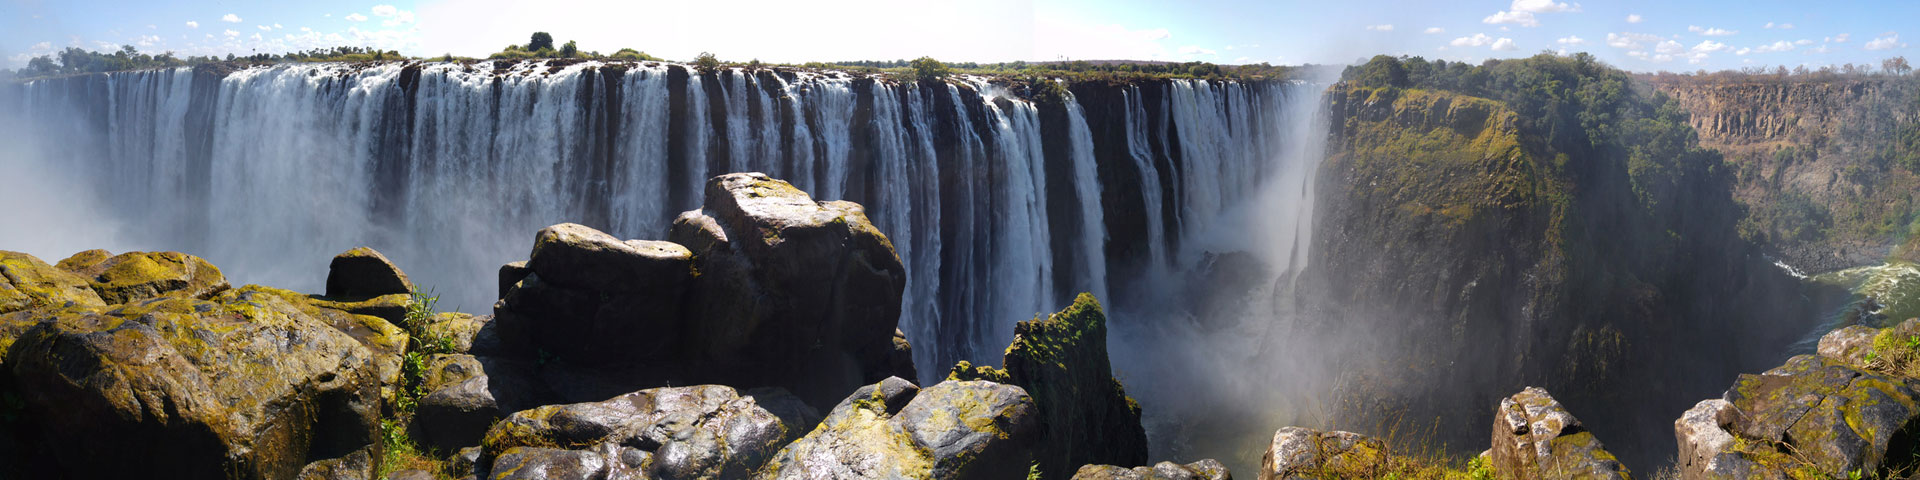 Hero image vic falls